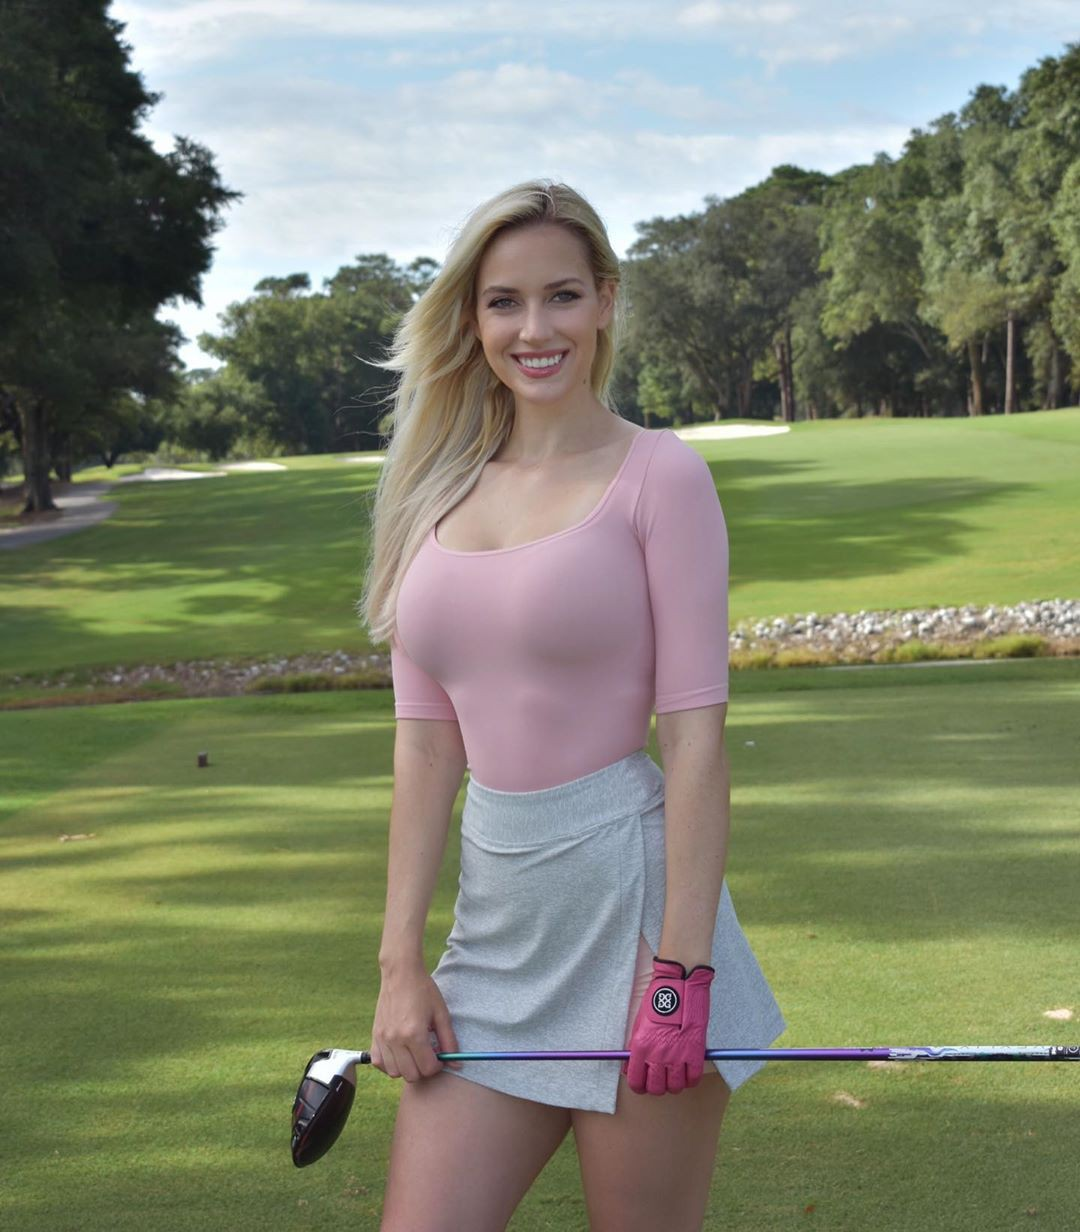 You should check these paige spiranac, Professional golfer